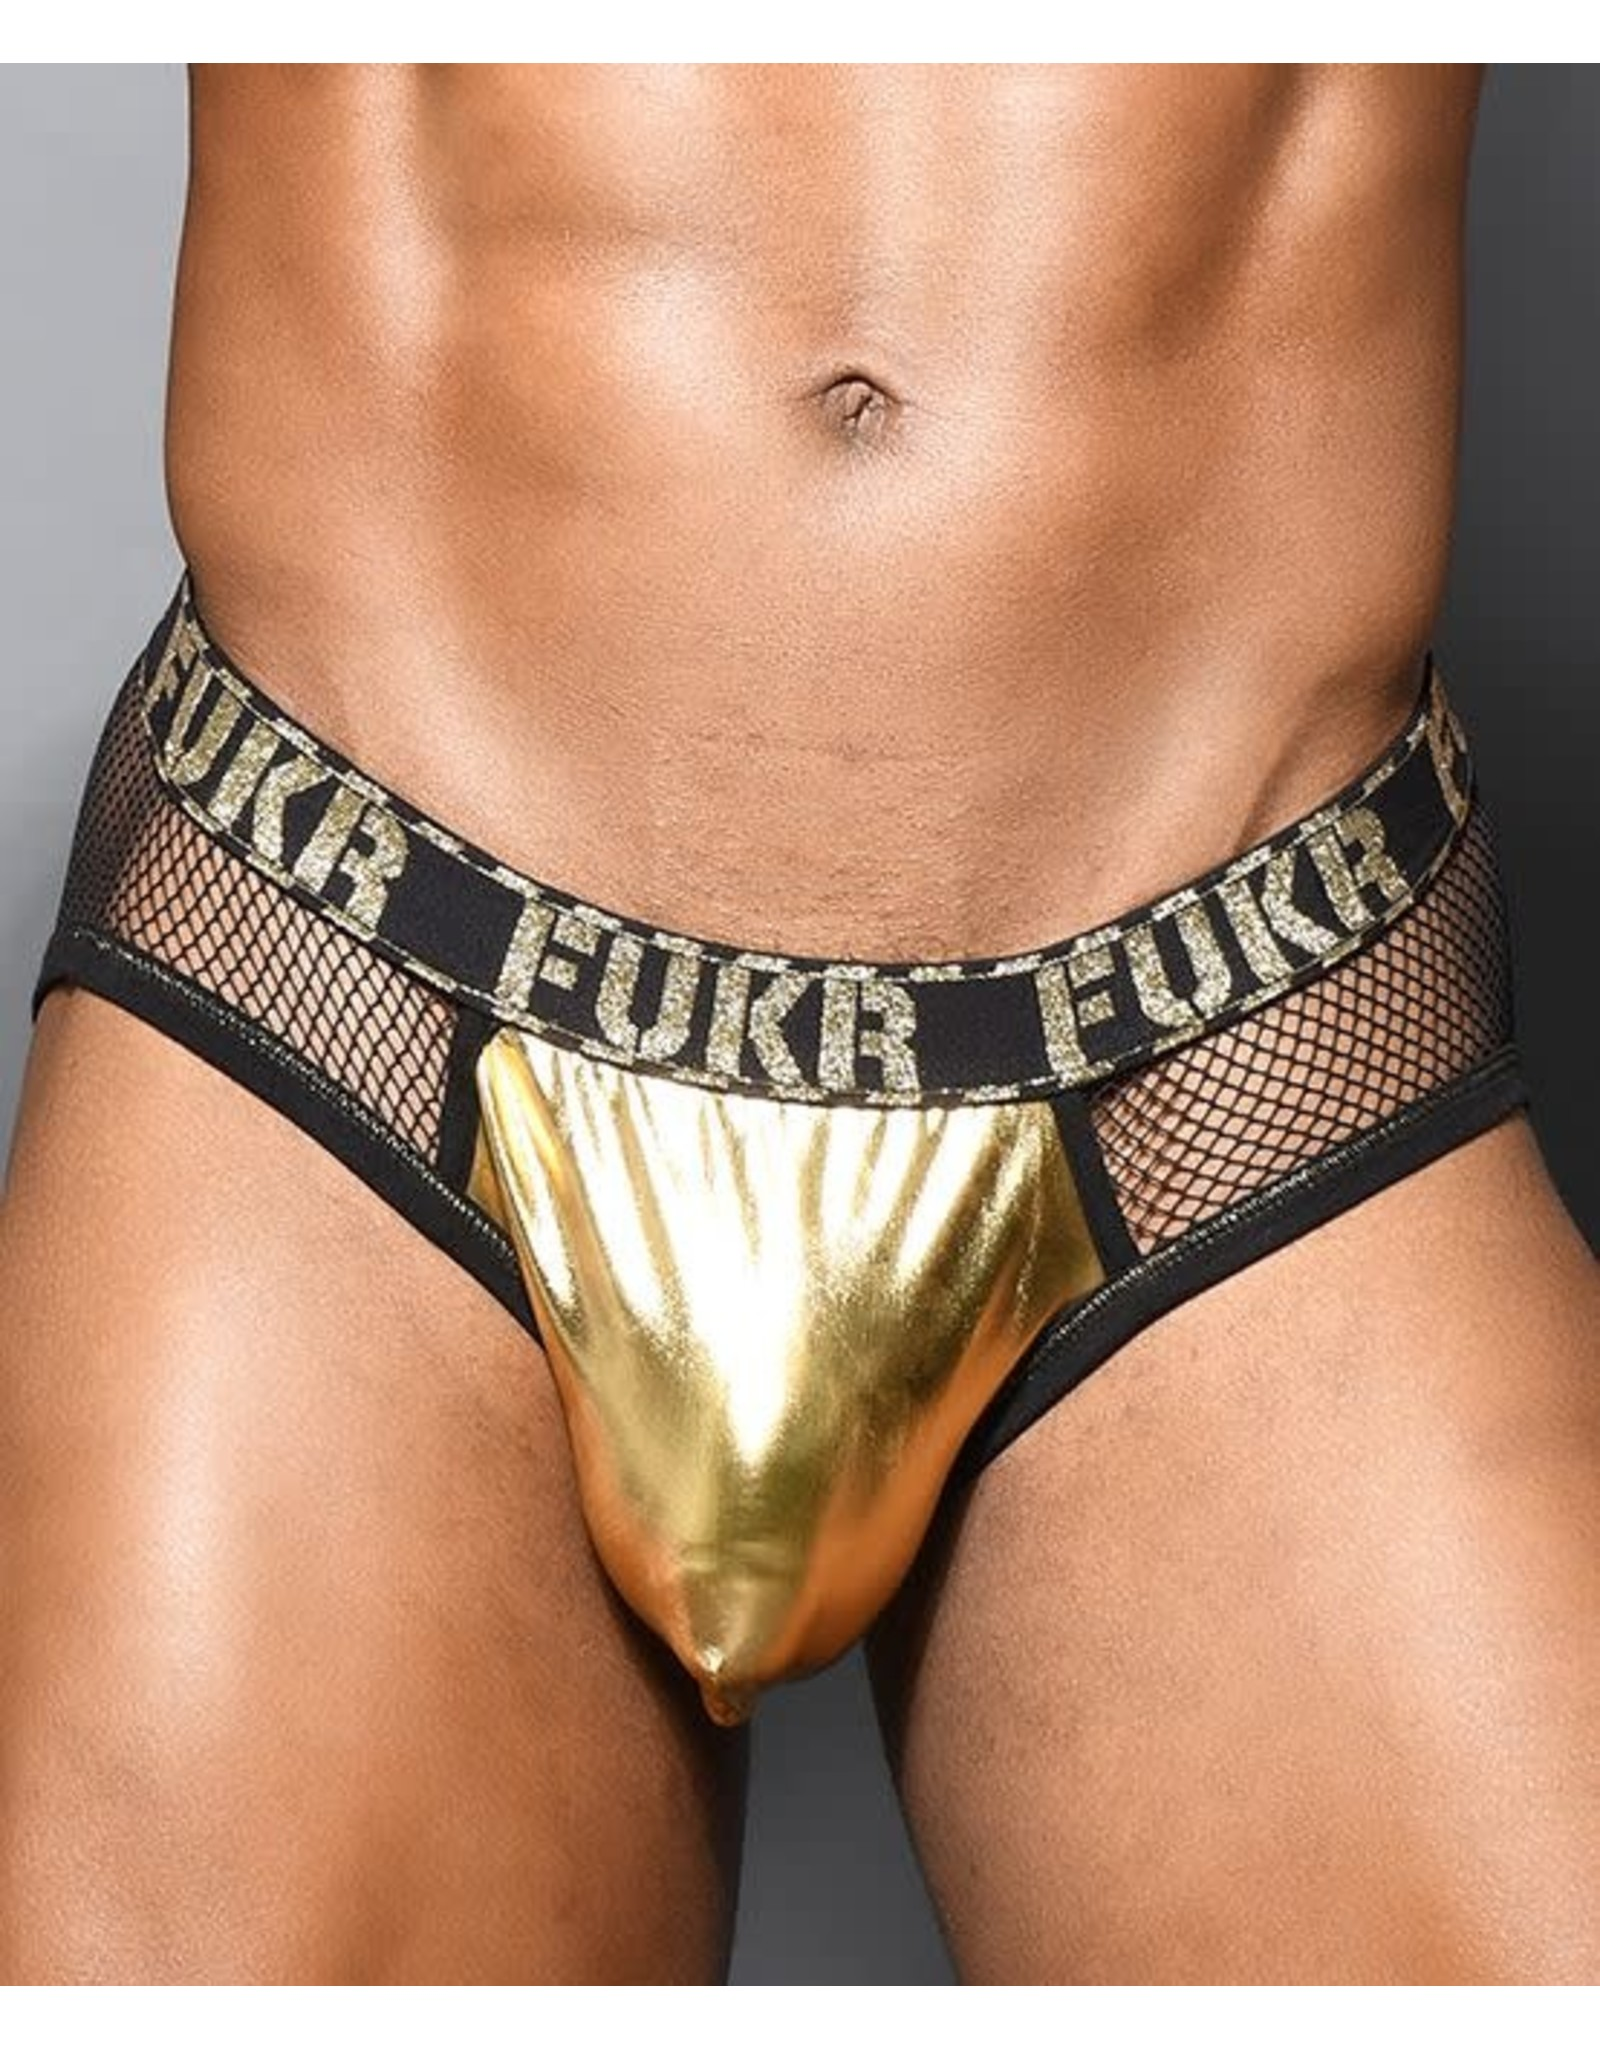 ANDREW CHRISTIAN ANDREW CHRISTIAN - FUKR GOLDEN NET BRIEF MEDIUM